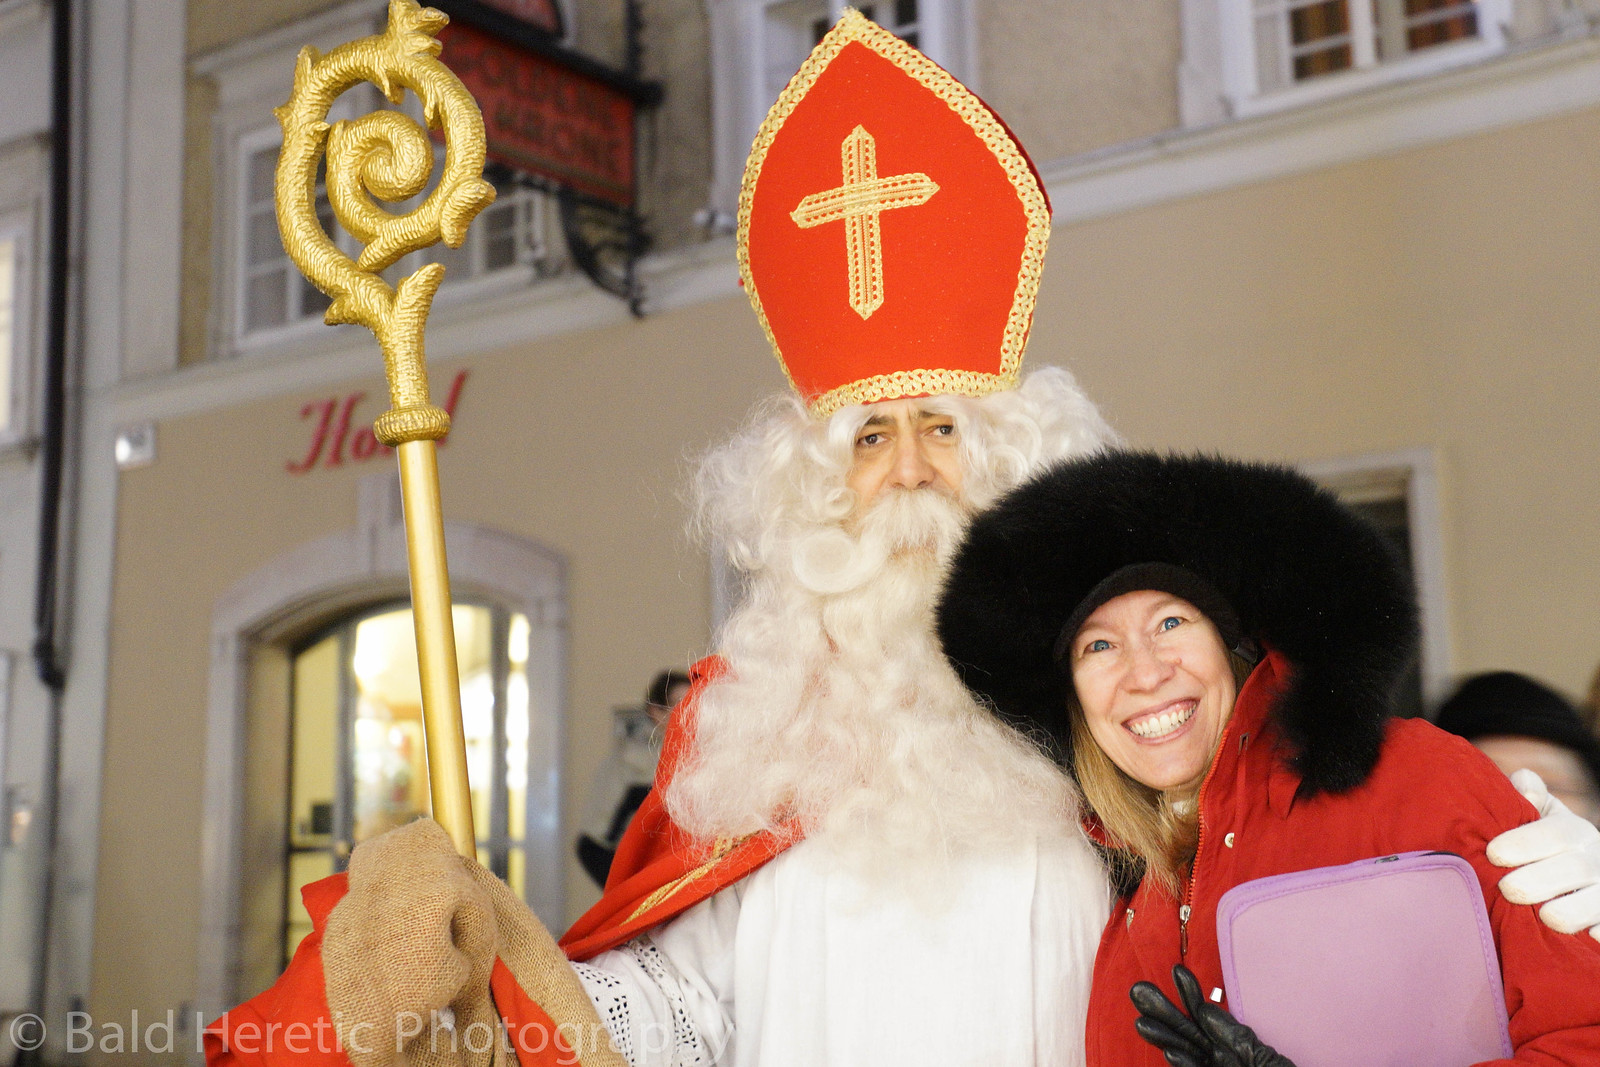 Cynthia and St. Nick on Krampusnacht